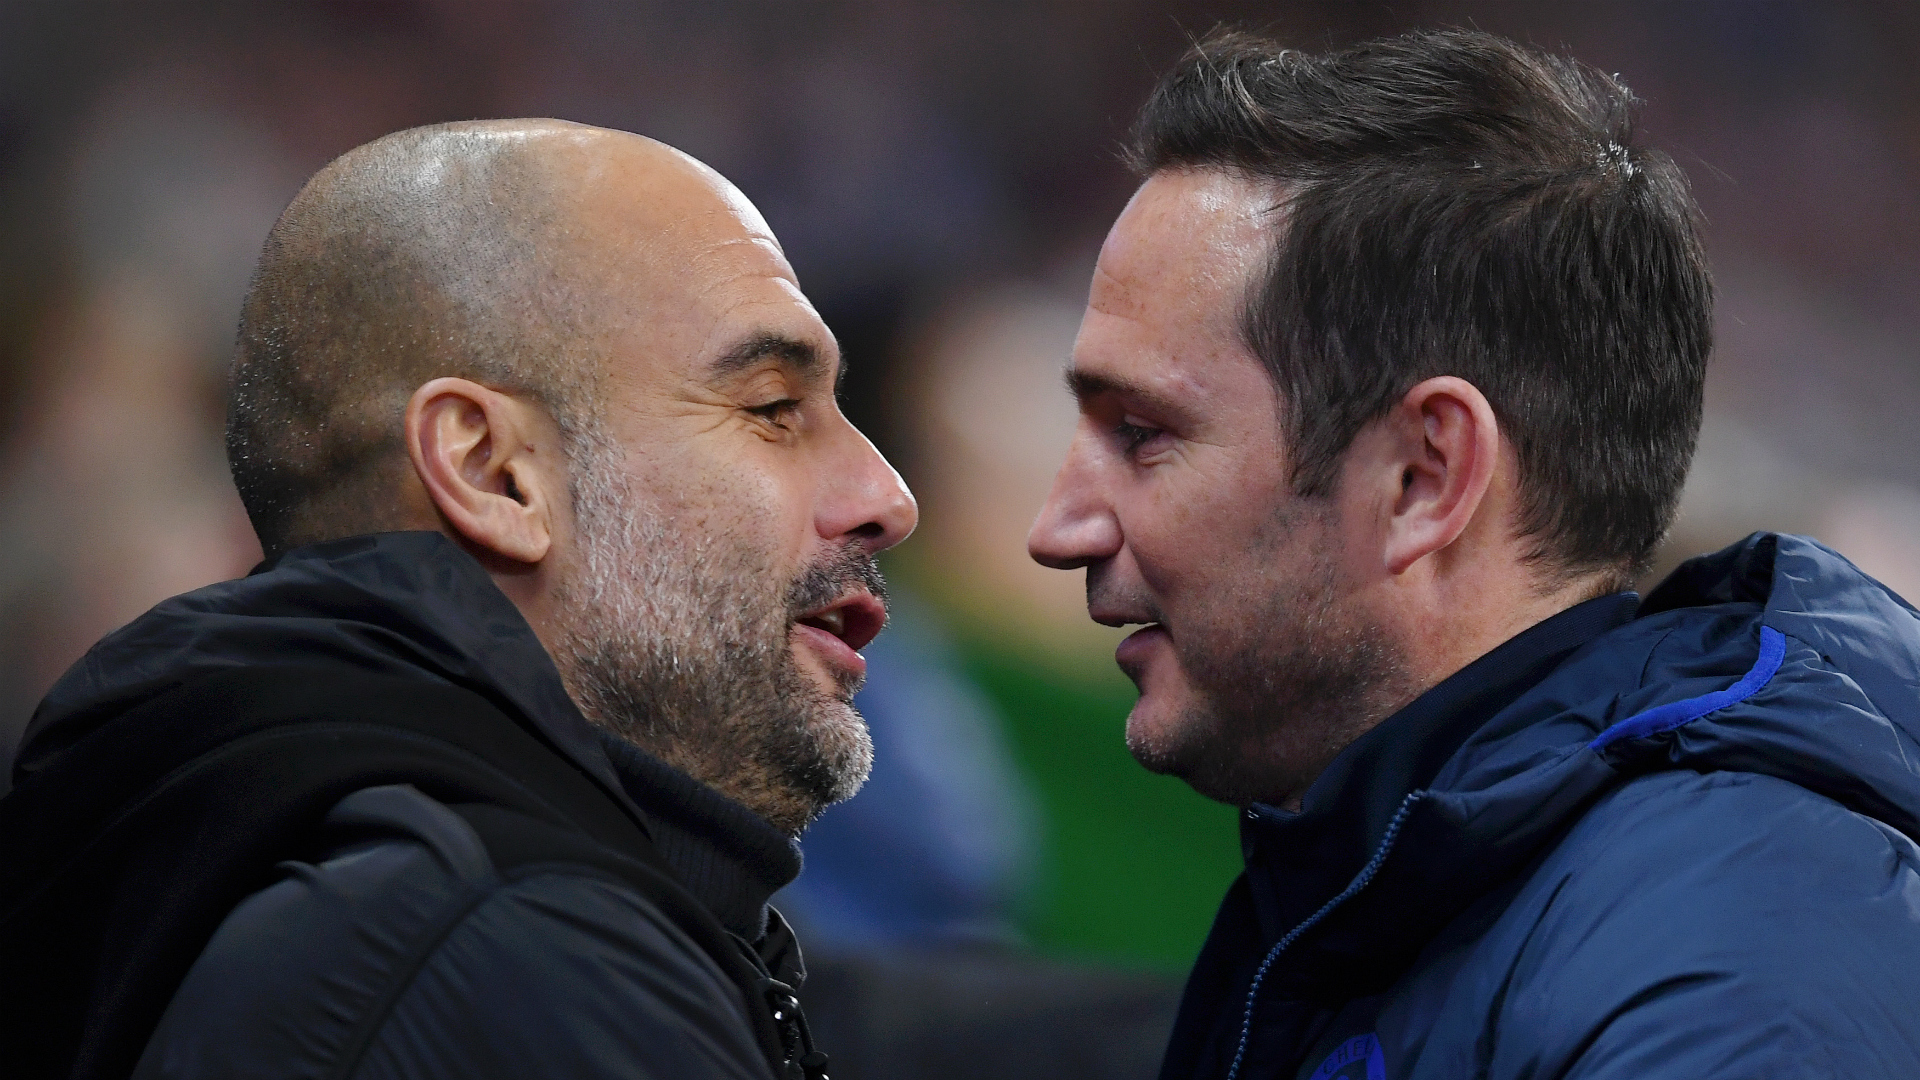 'You have to win' – Guardiola says all managers fear sack after Chelsea dismiss Lampard